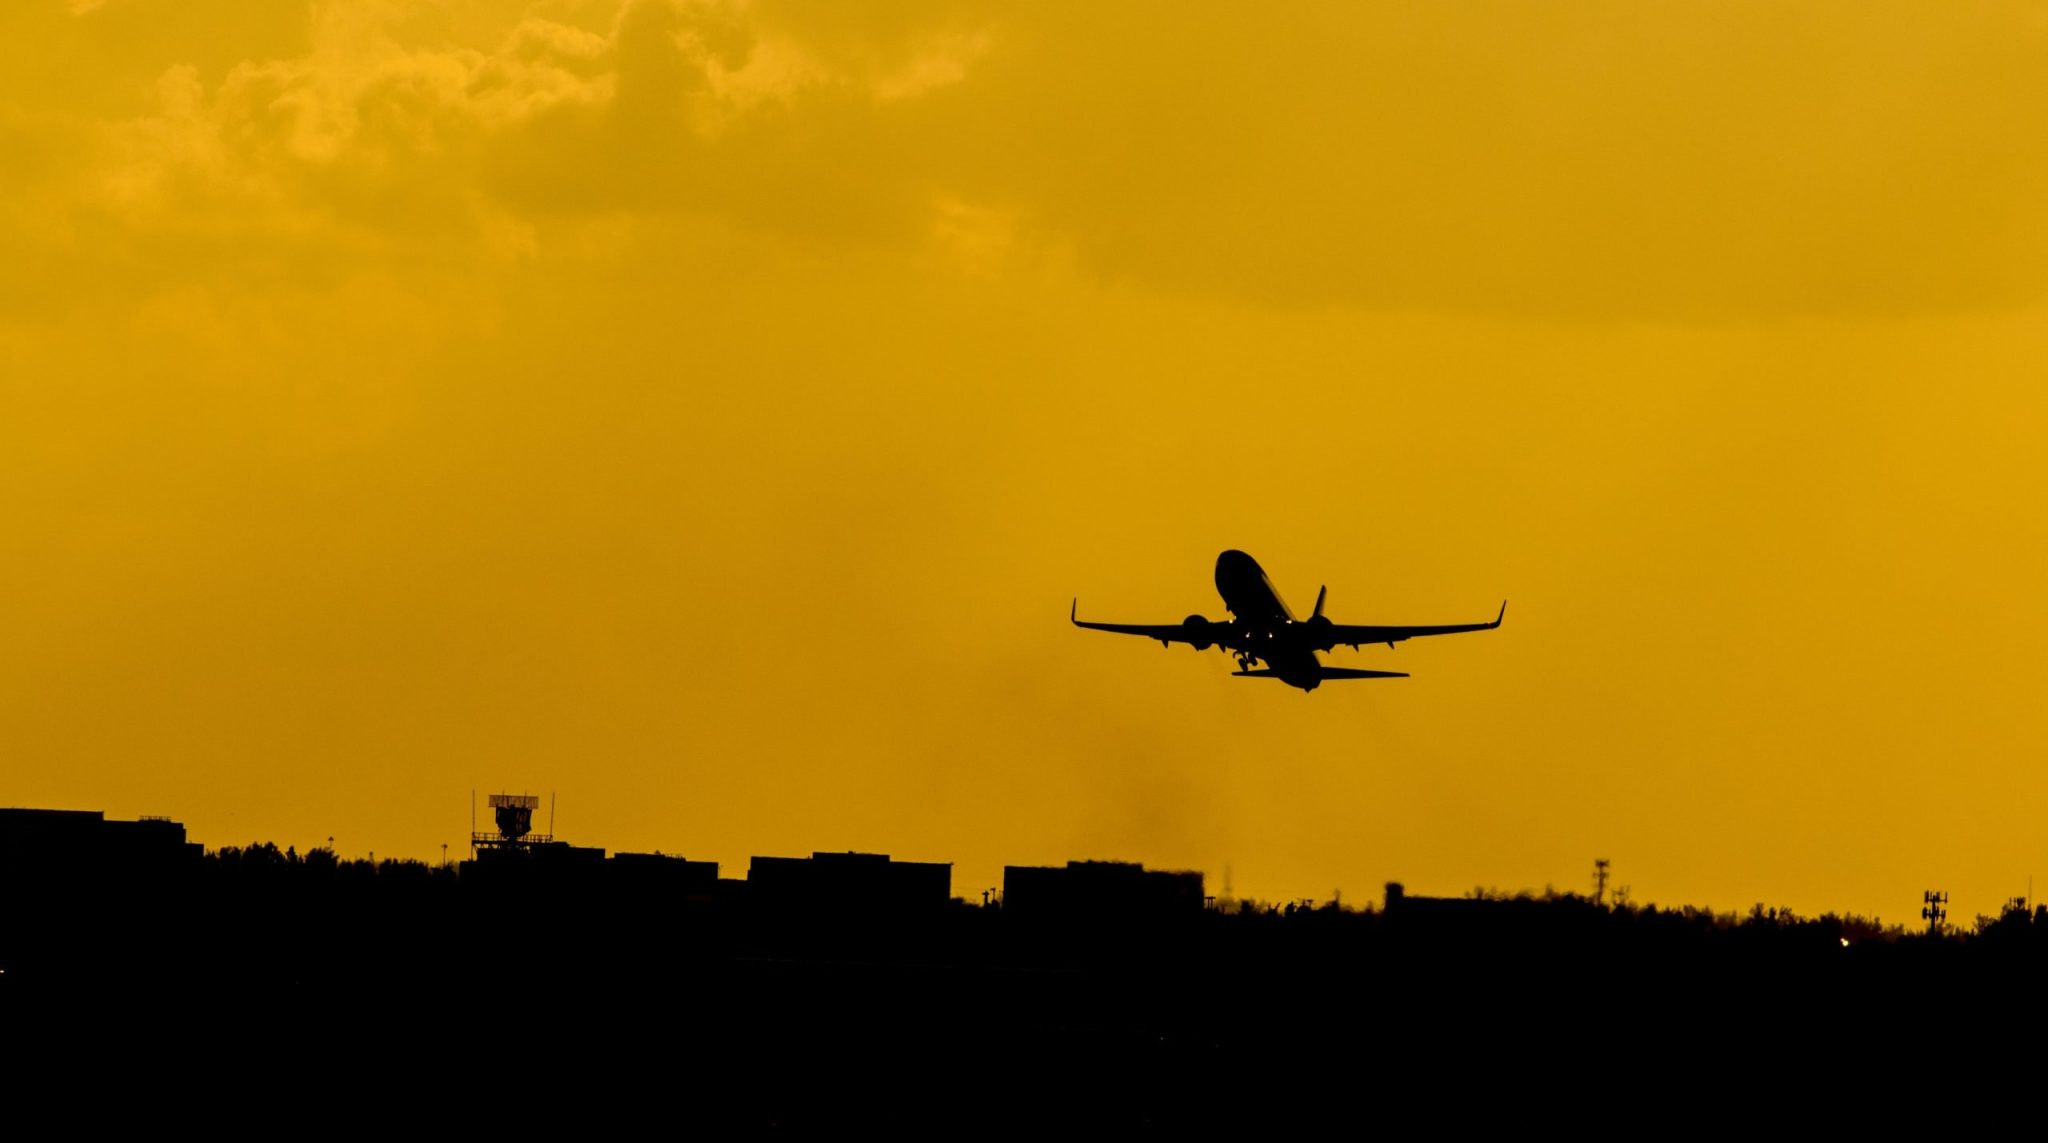 A plane taking off into the sunset. Take the leap to teach English in Thailand.